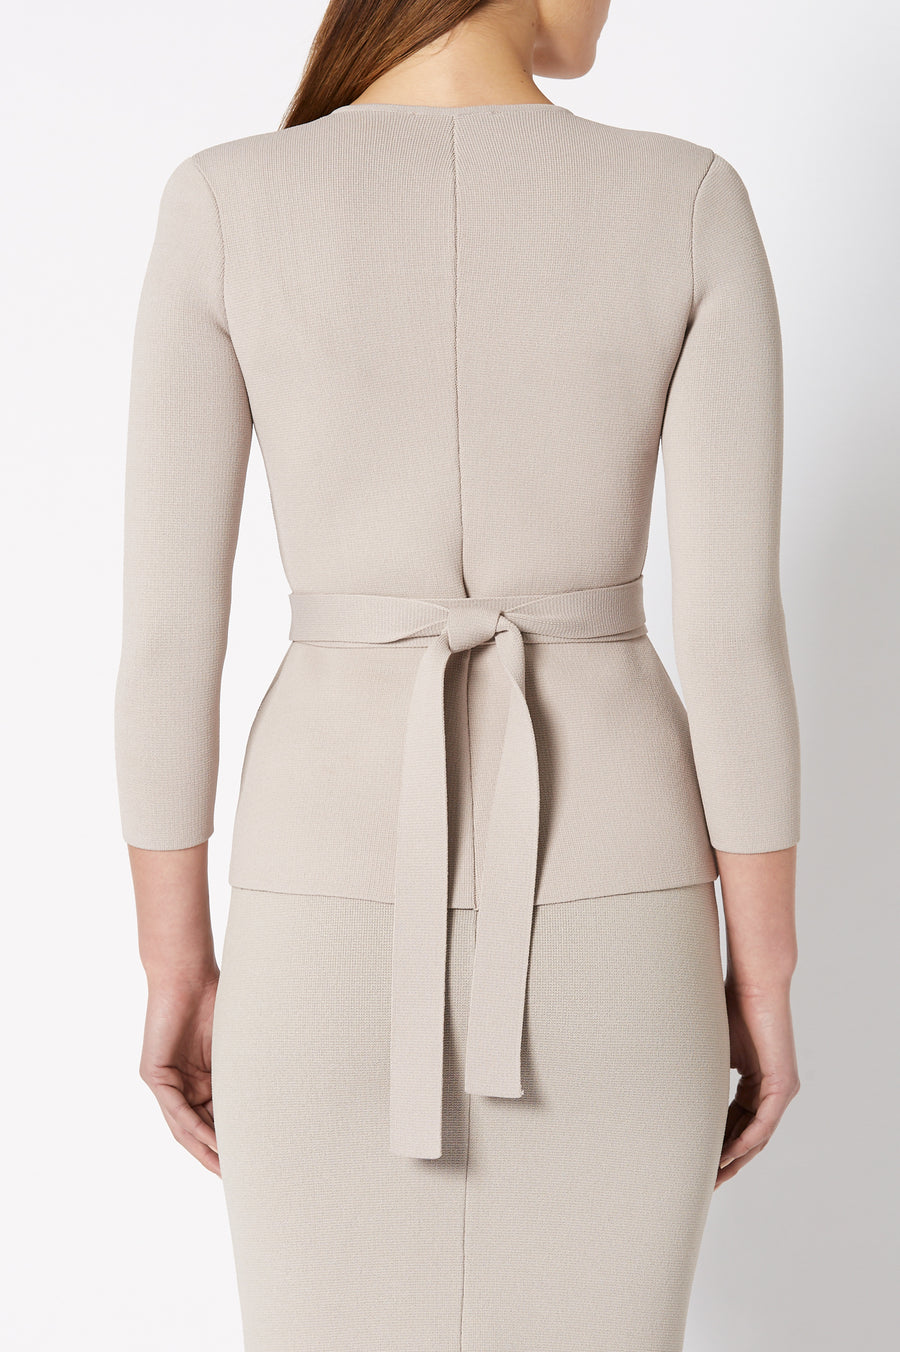 The Curved Hem Jacket closes at the front with a zip and includes a separate belt to be worn high around the waist.